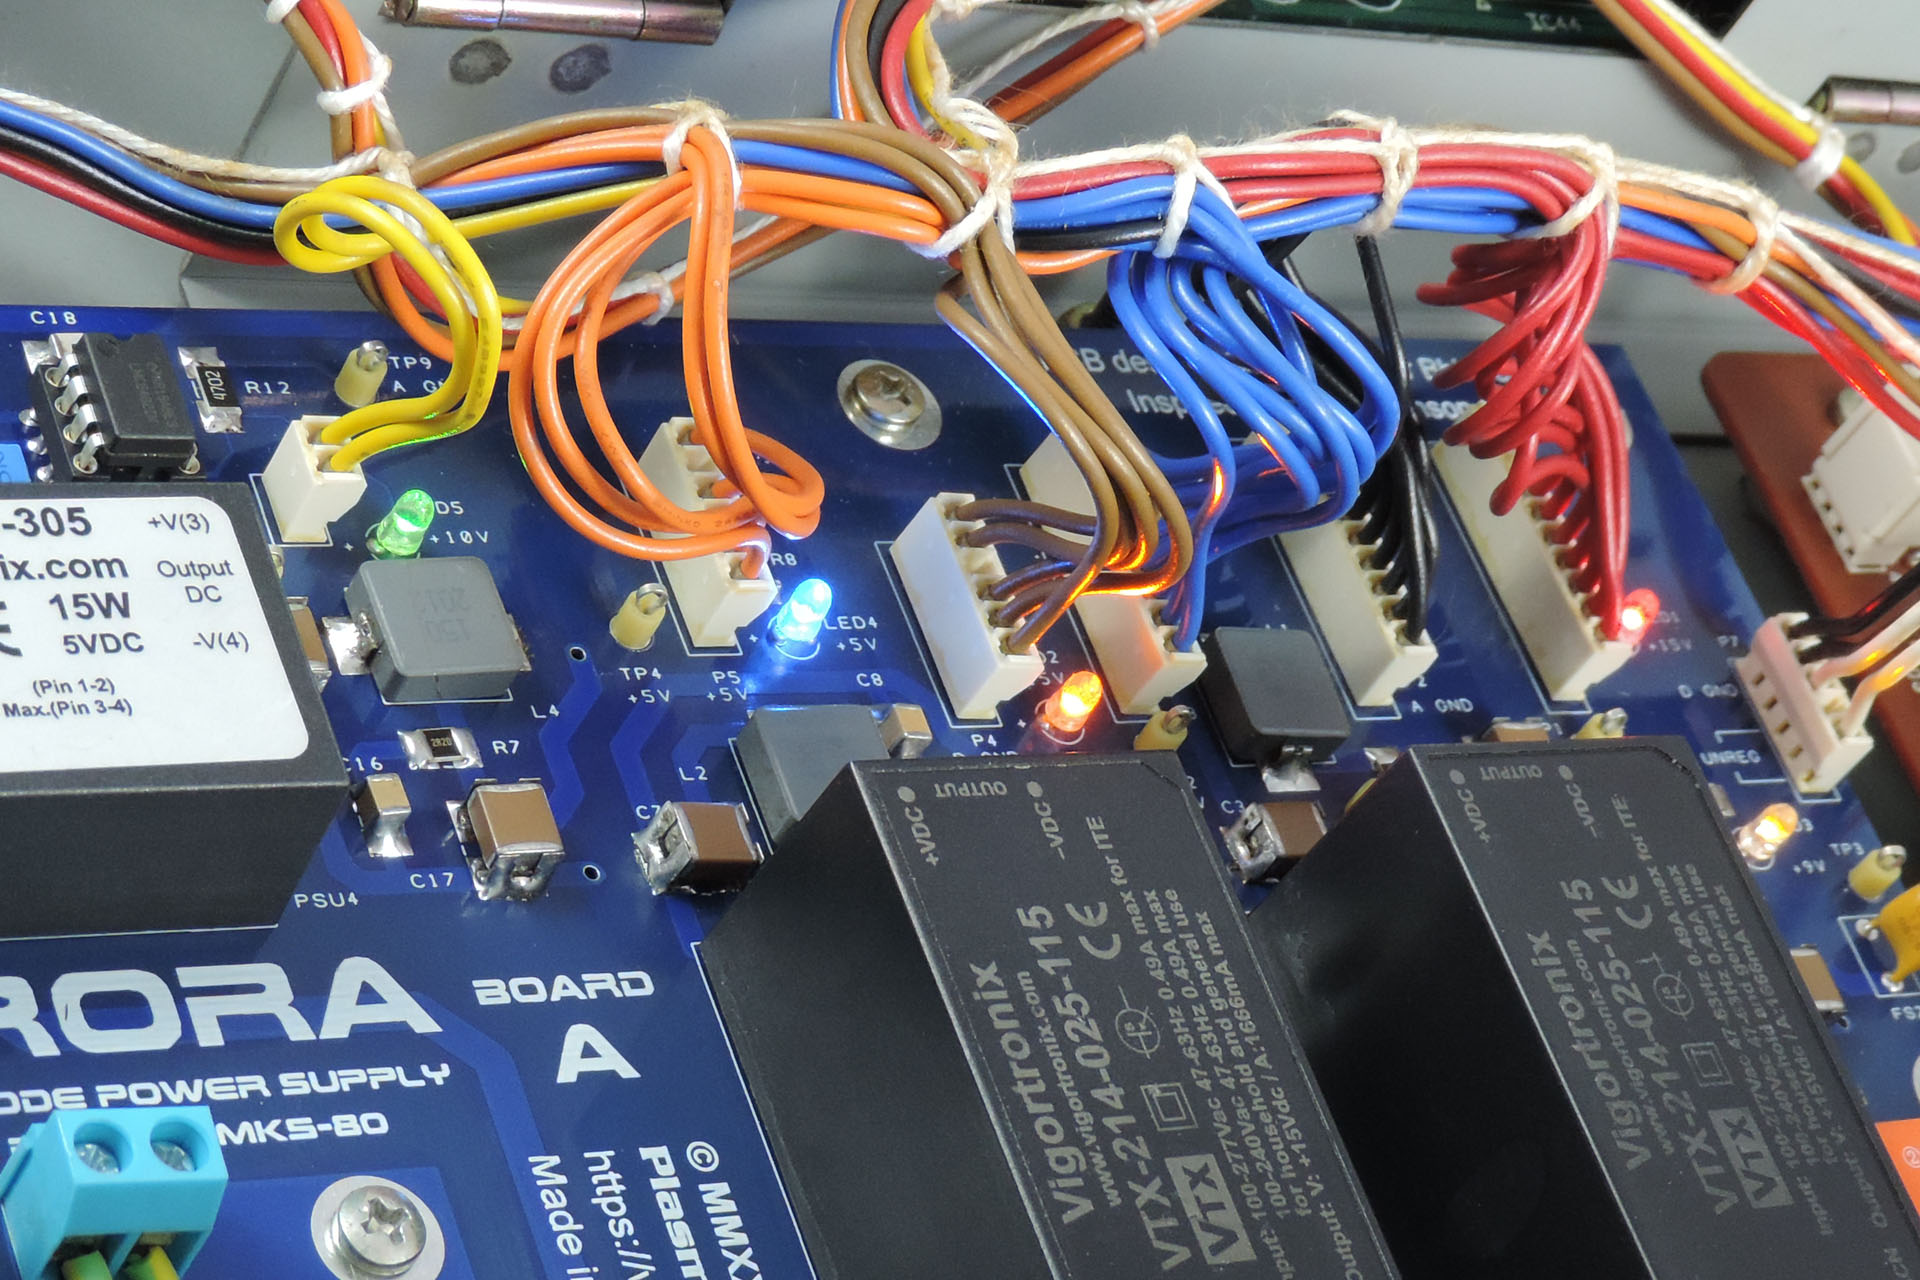 Individual power rail status indicators on Aurora switched-mode power supply for the Roland MKS-80